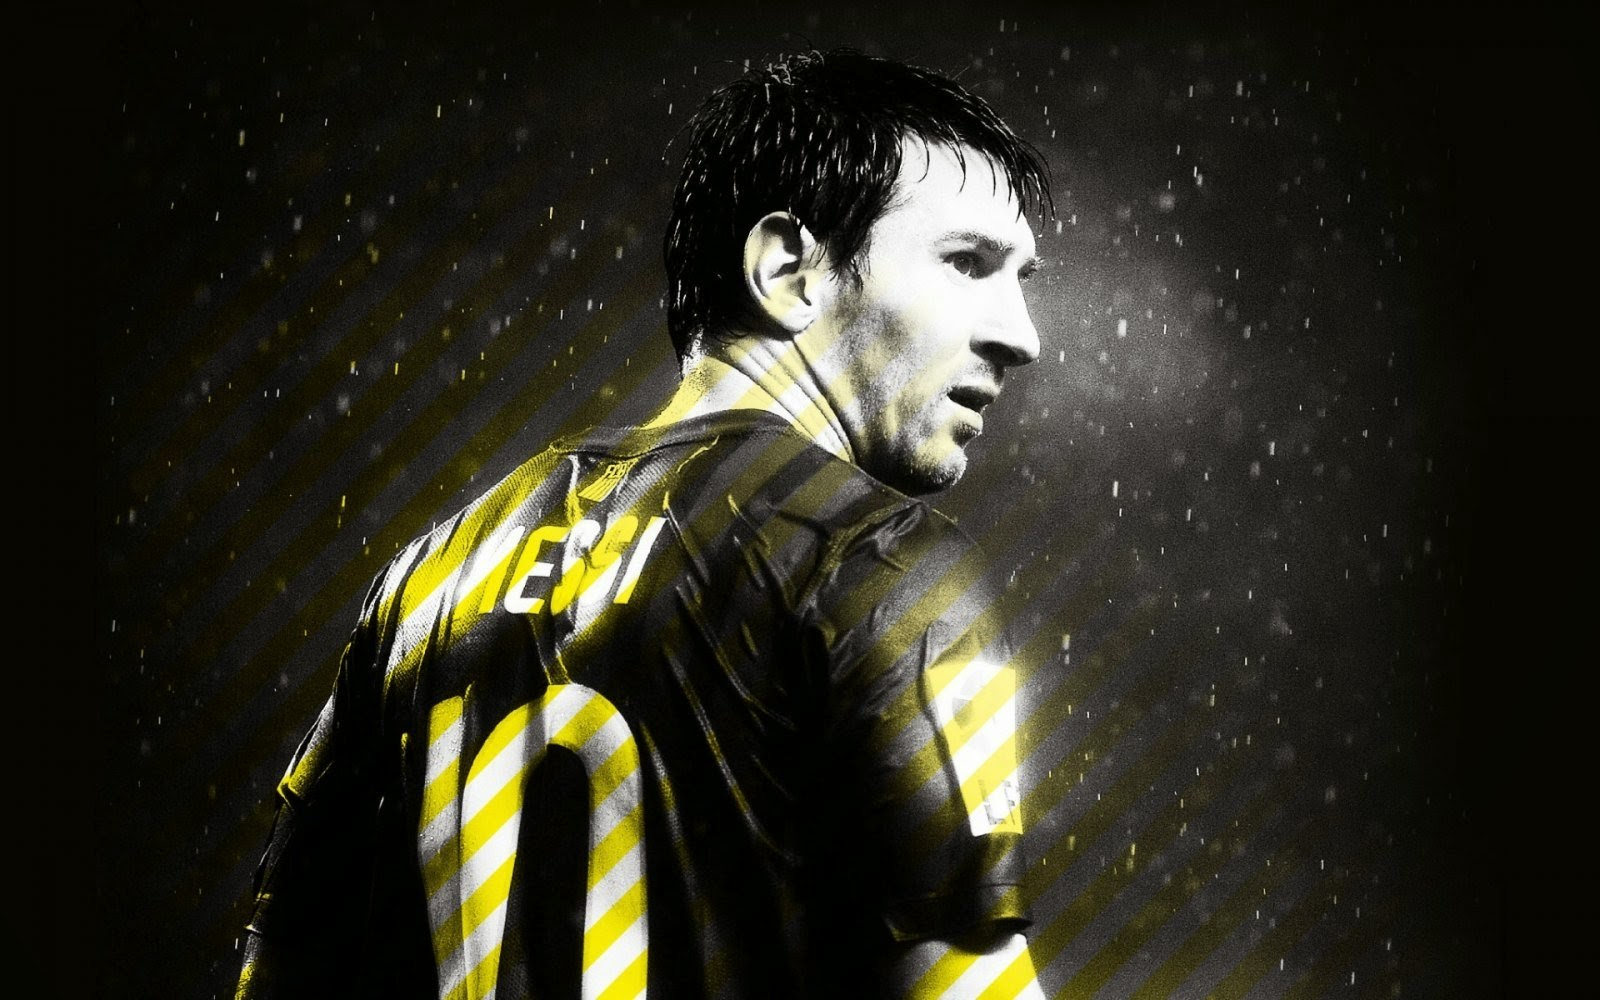 messi wallpapers lionel messi wallpapers download lionel messi 1600x1000